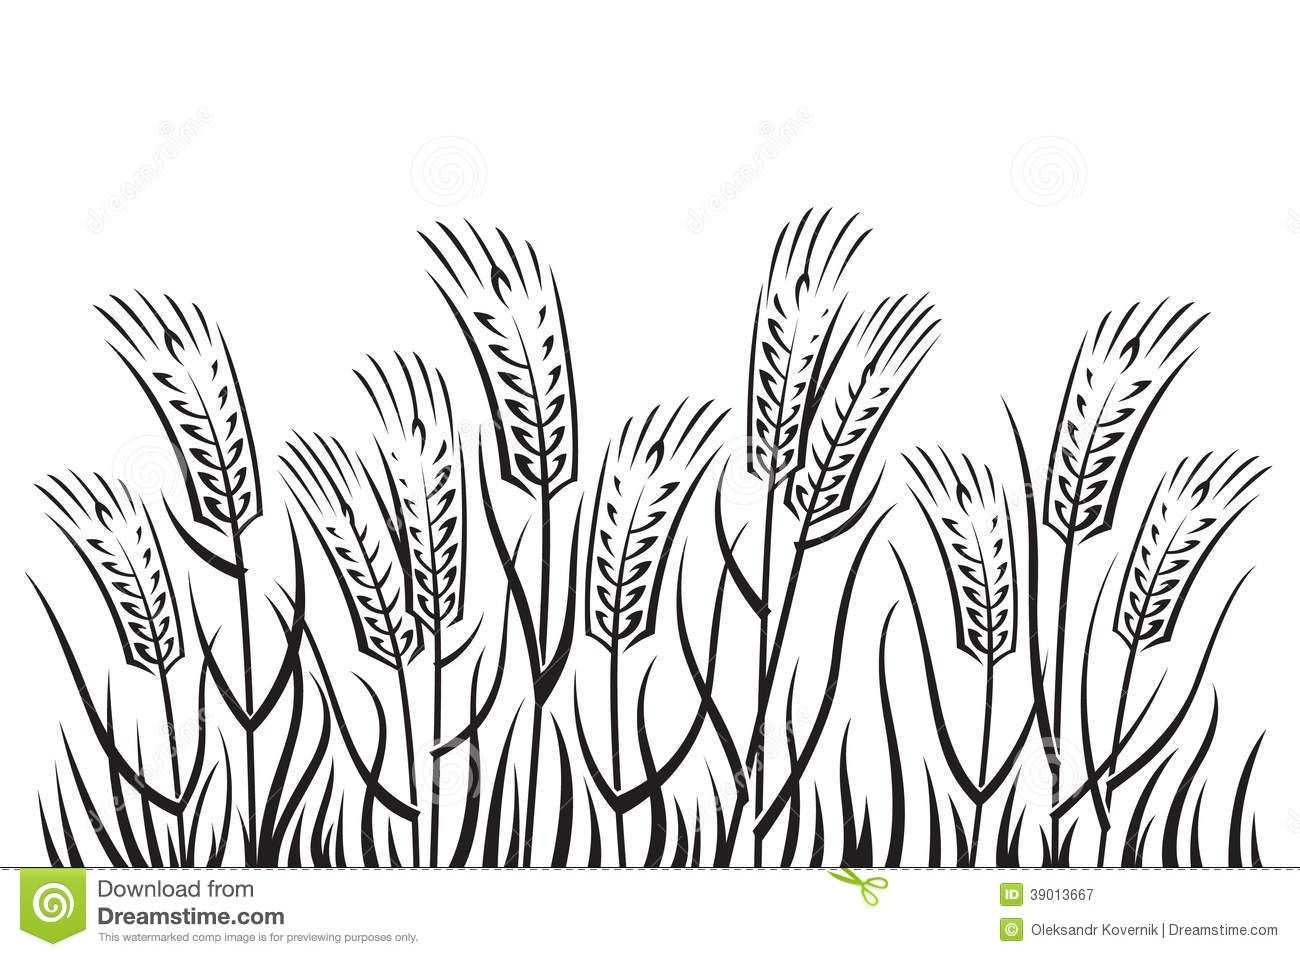 farm field clipart black and white.